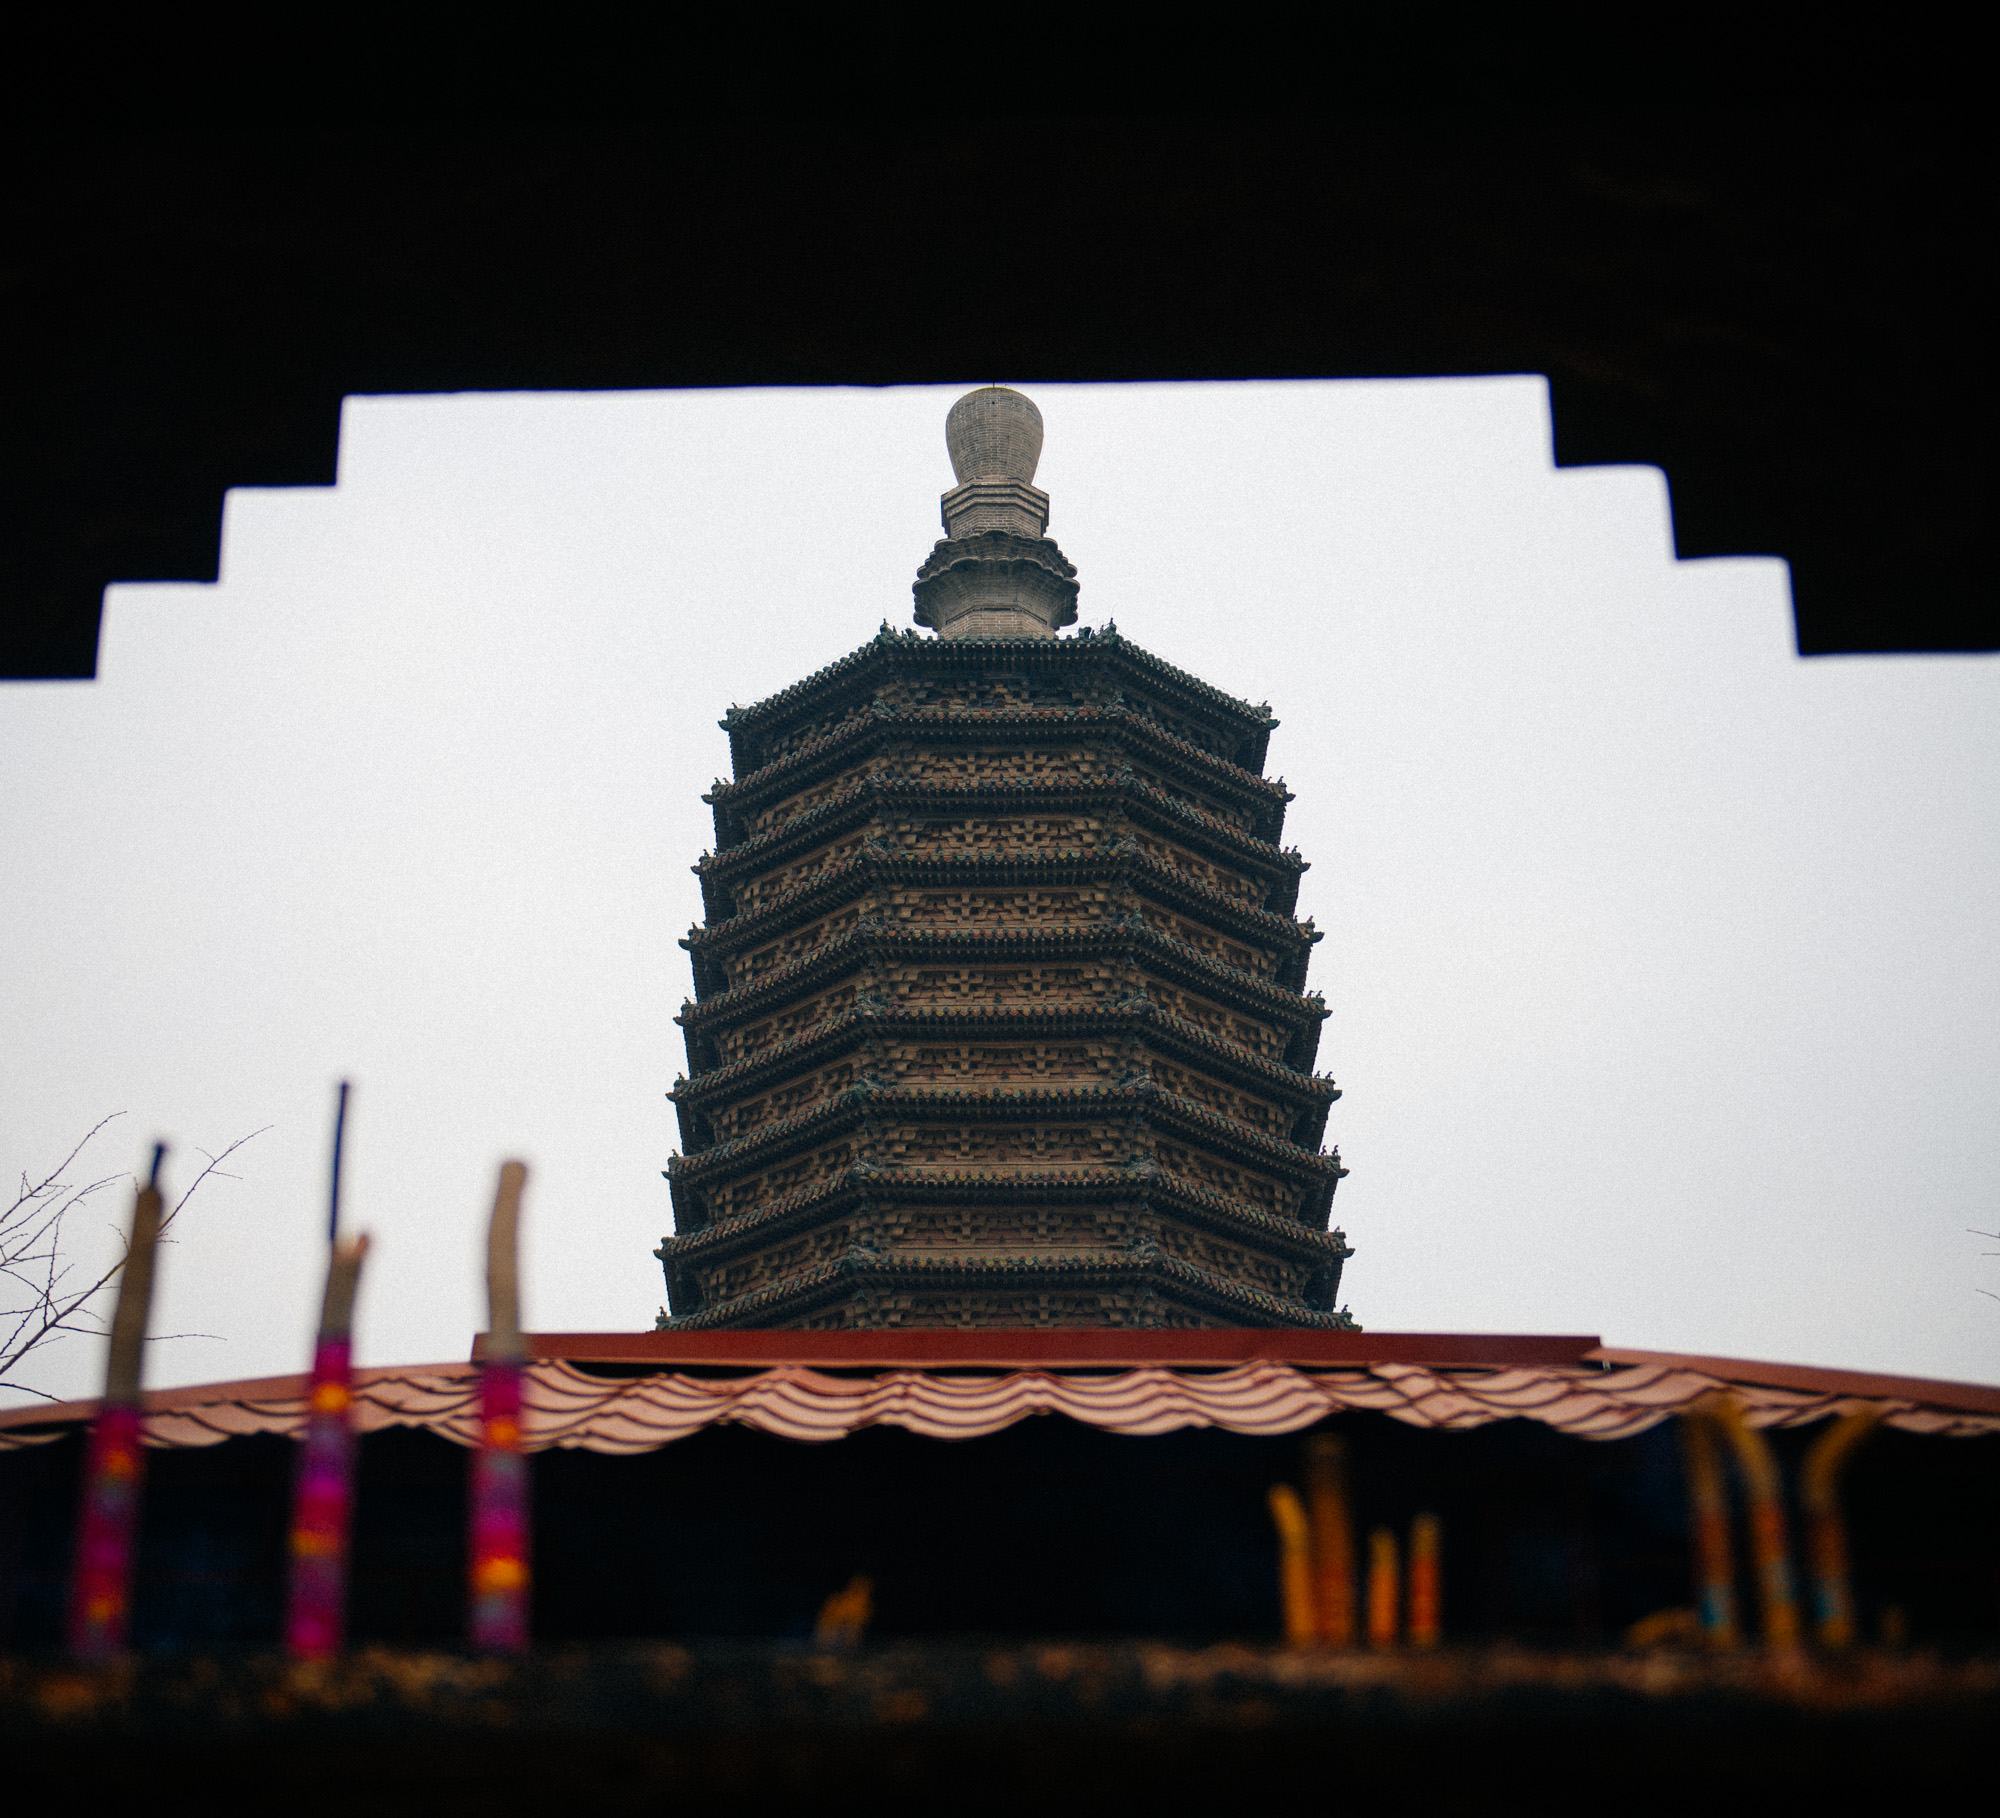 Like many ancient and historical structures in Beijing, if you didn't know it was there, you'd miss it. The pagoda is right in the middle of a residential area and is not a very famous tourist spot.